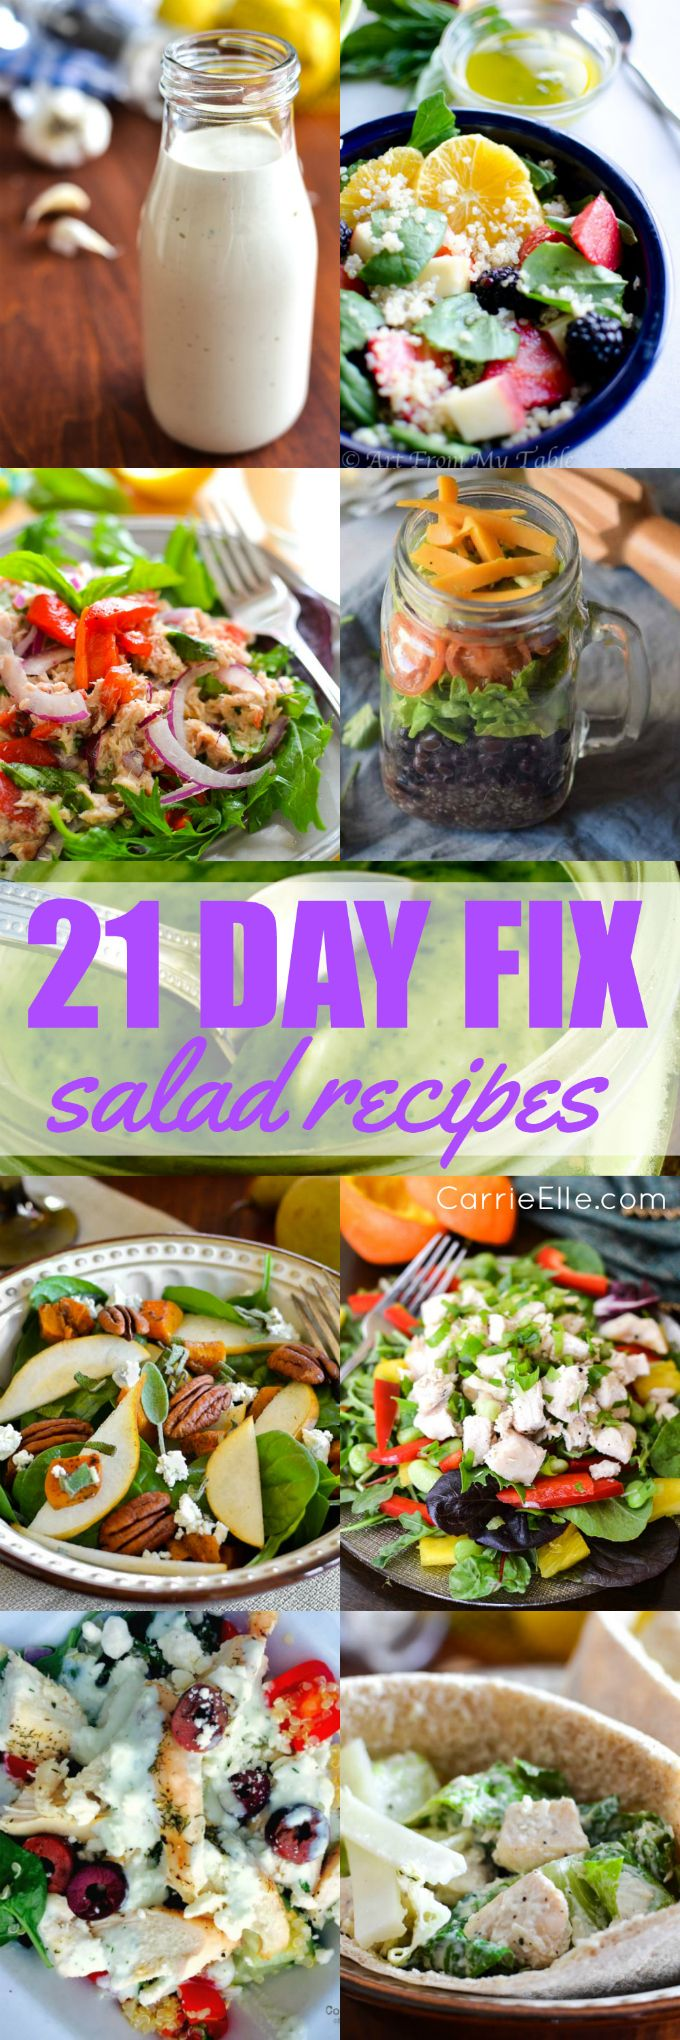 21 Day Fix Salad Recipes {that are totally NOT boring}